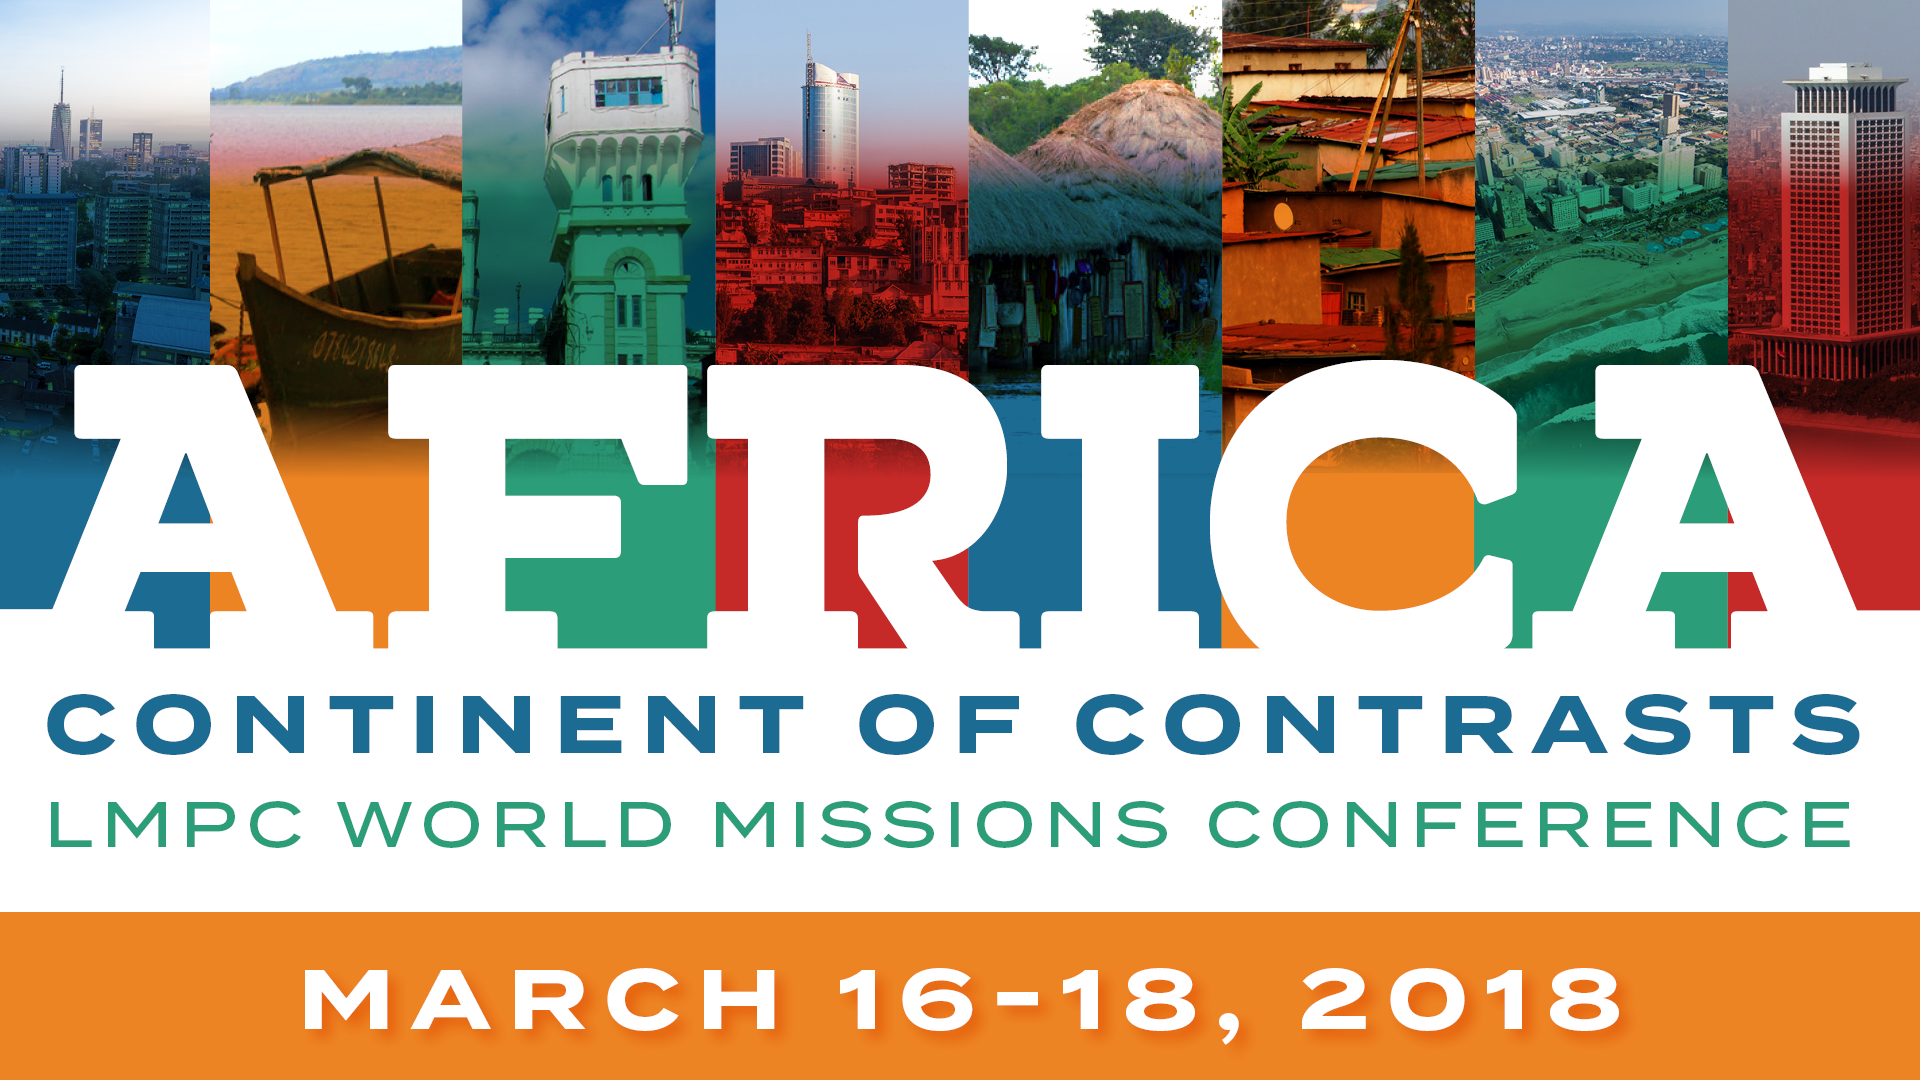 Africa: Continent of Contrasts - LMPC World Missions Conference 2018